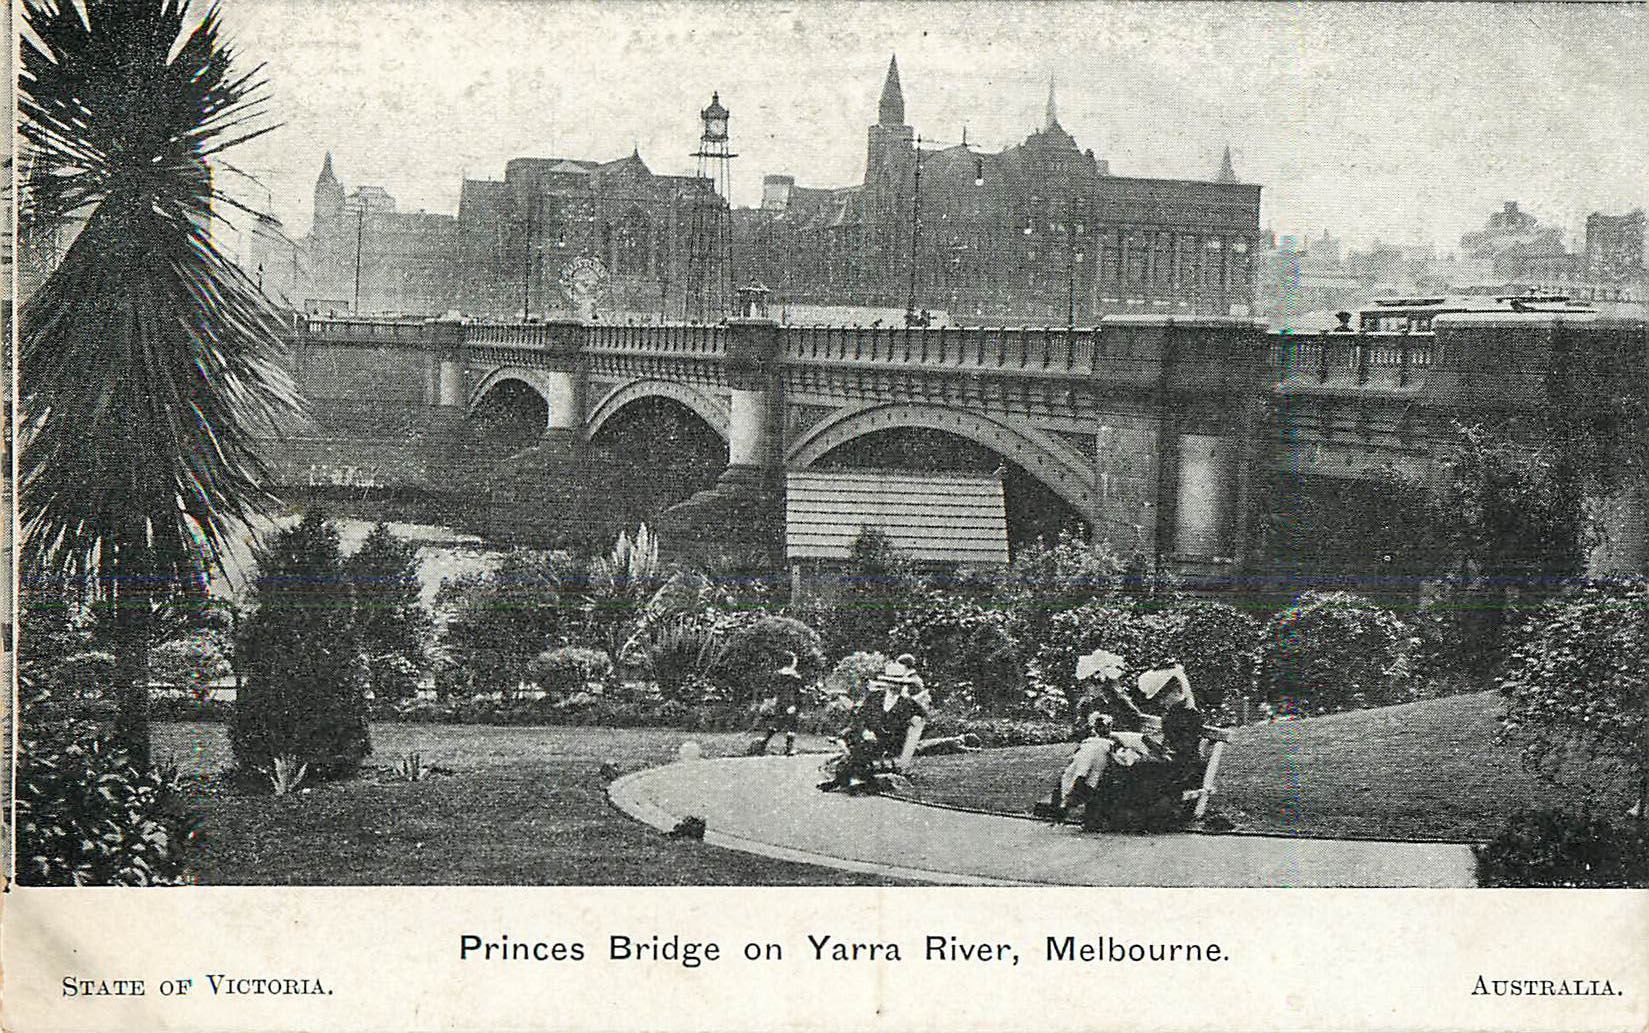 Princes Bridge on Yarra River, Melbourne, Australia